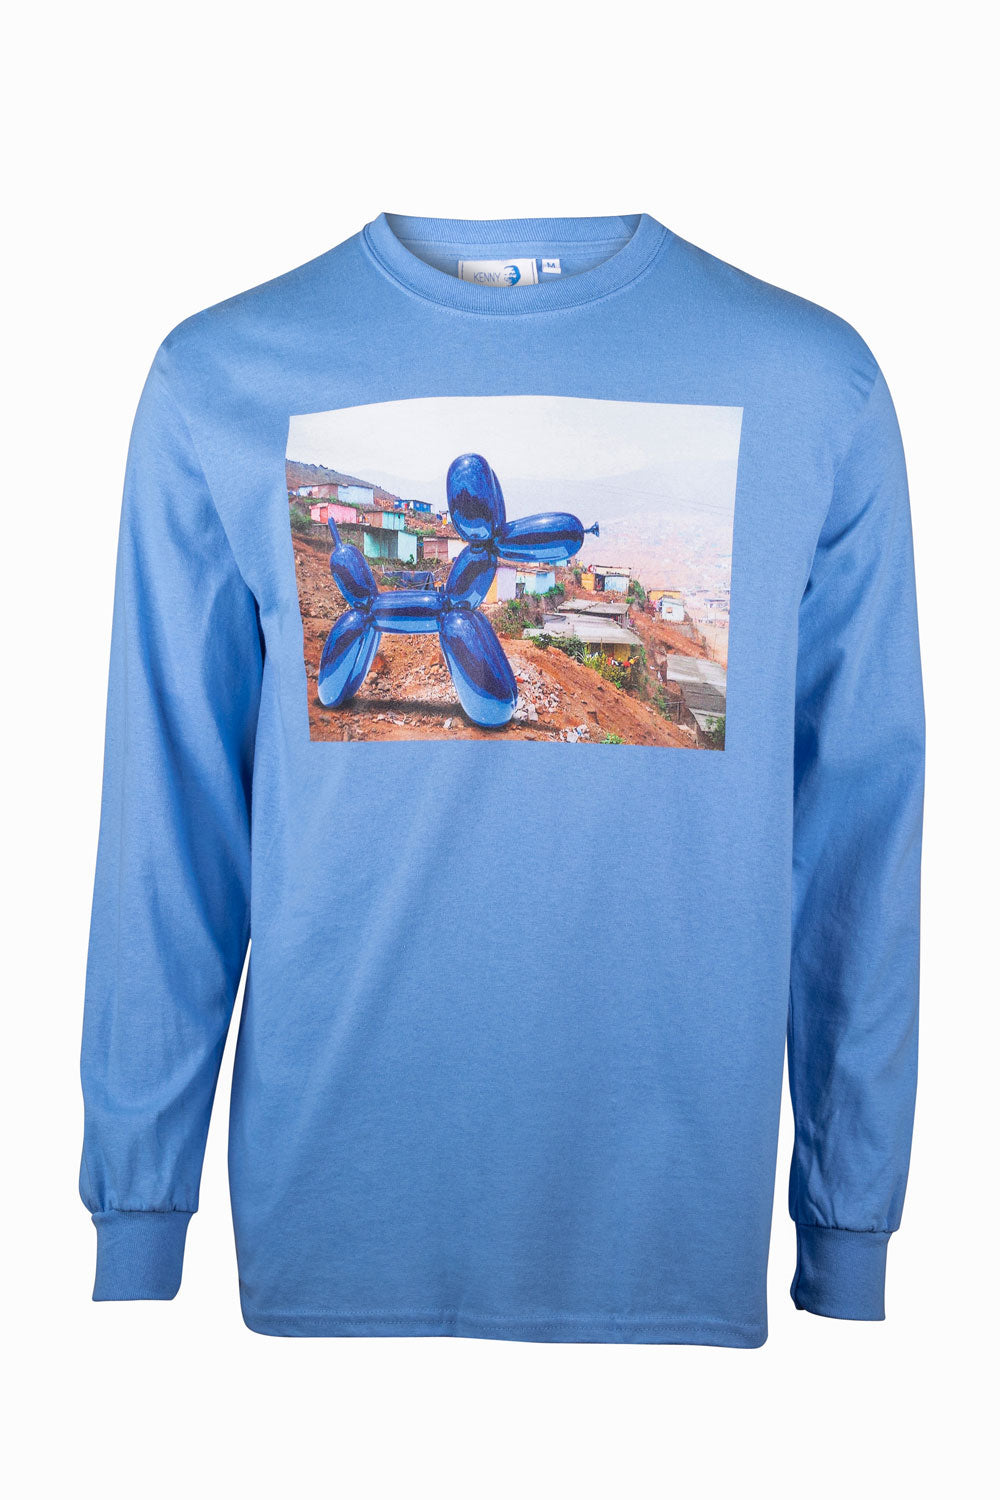 Kenny Schachter 'Shanty Koons' Long Sleeve Top